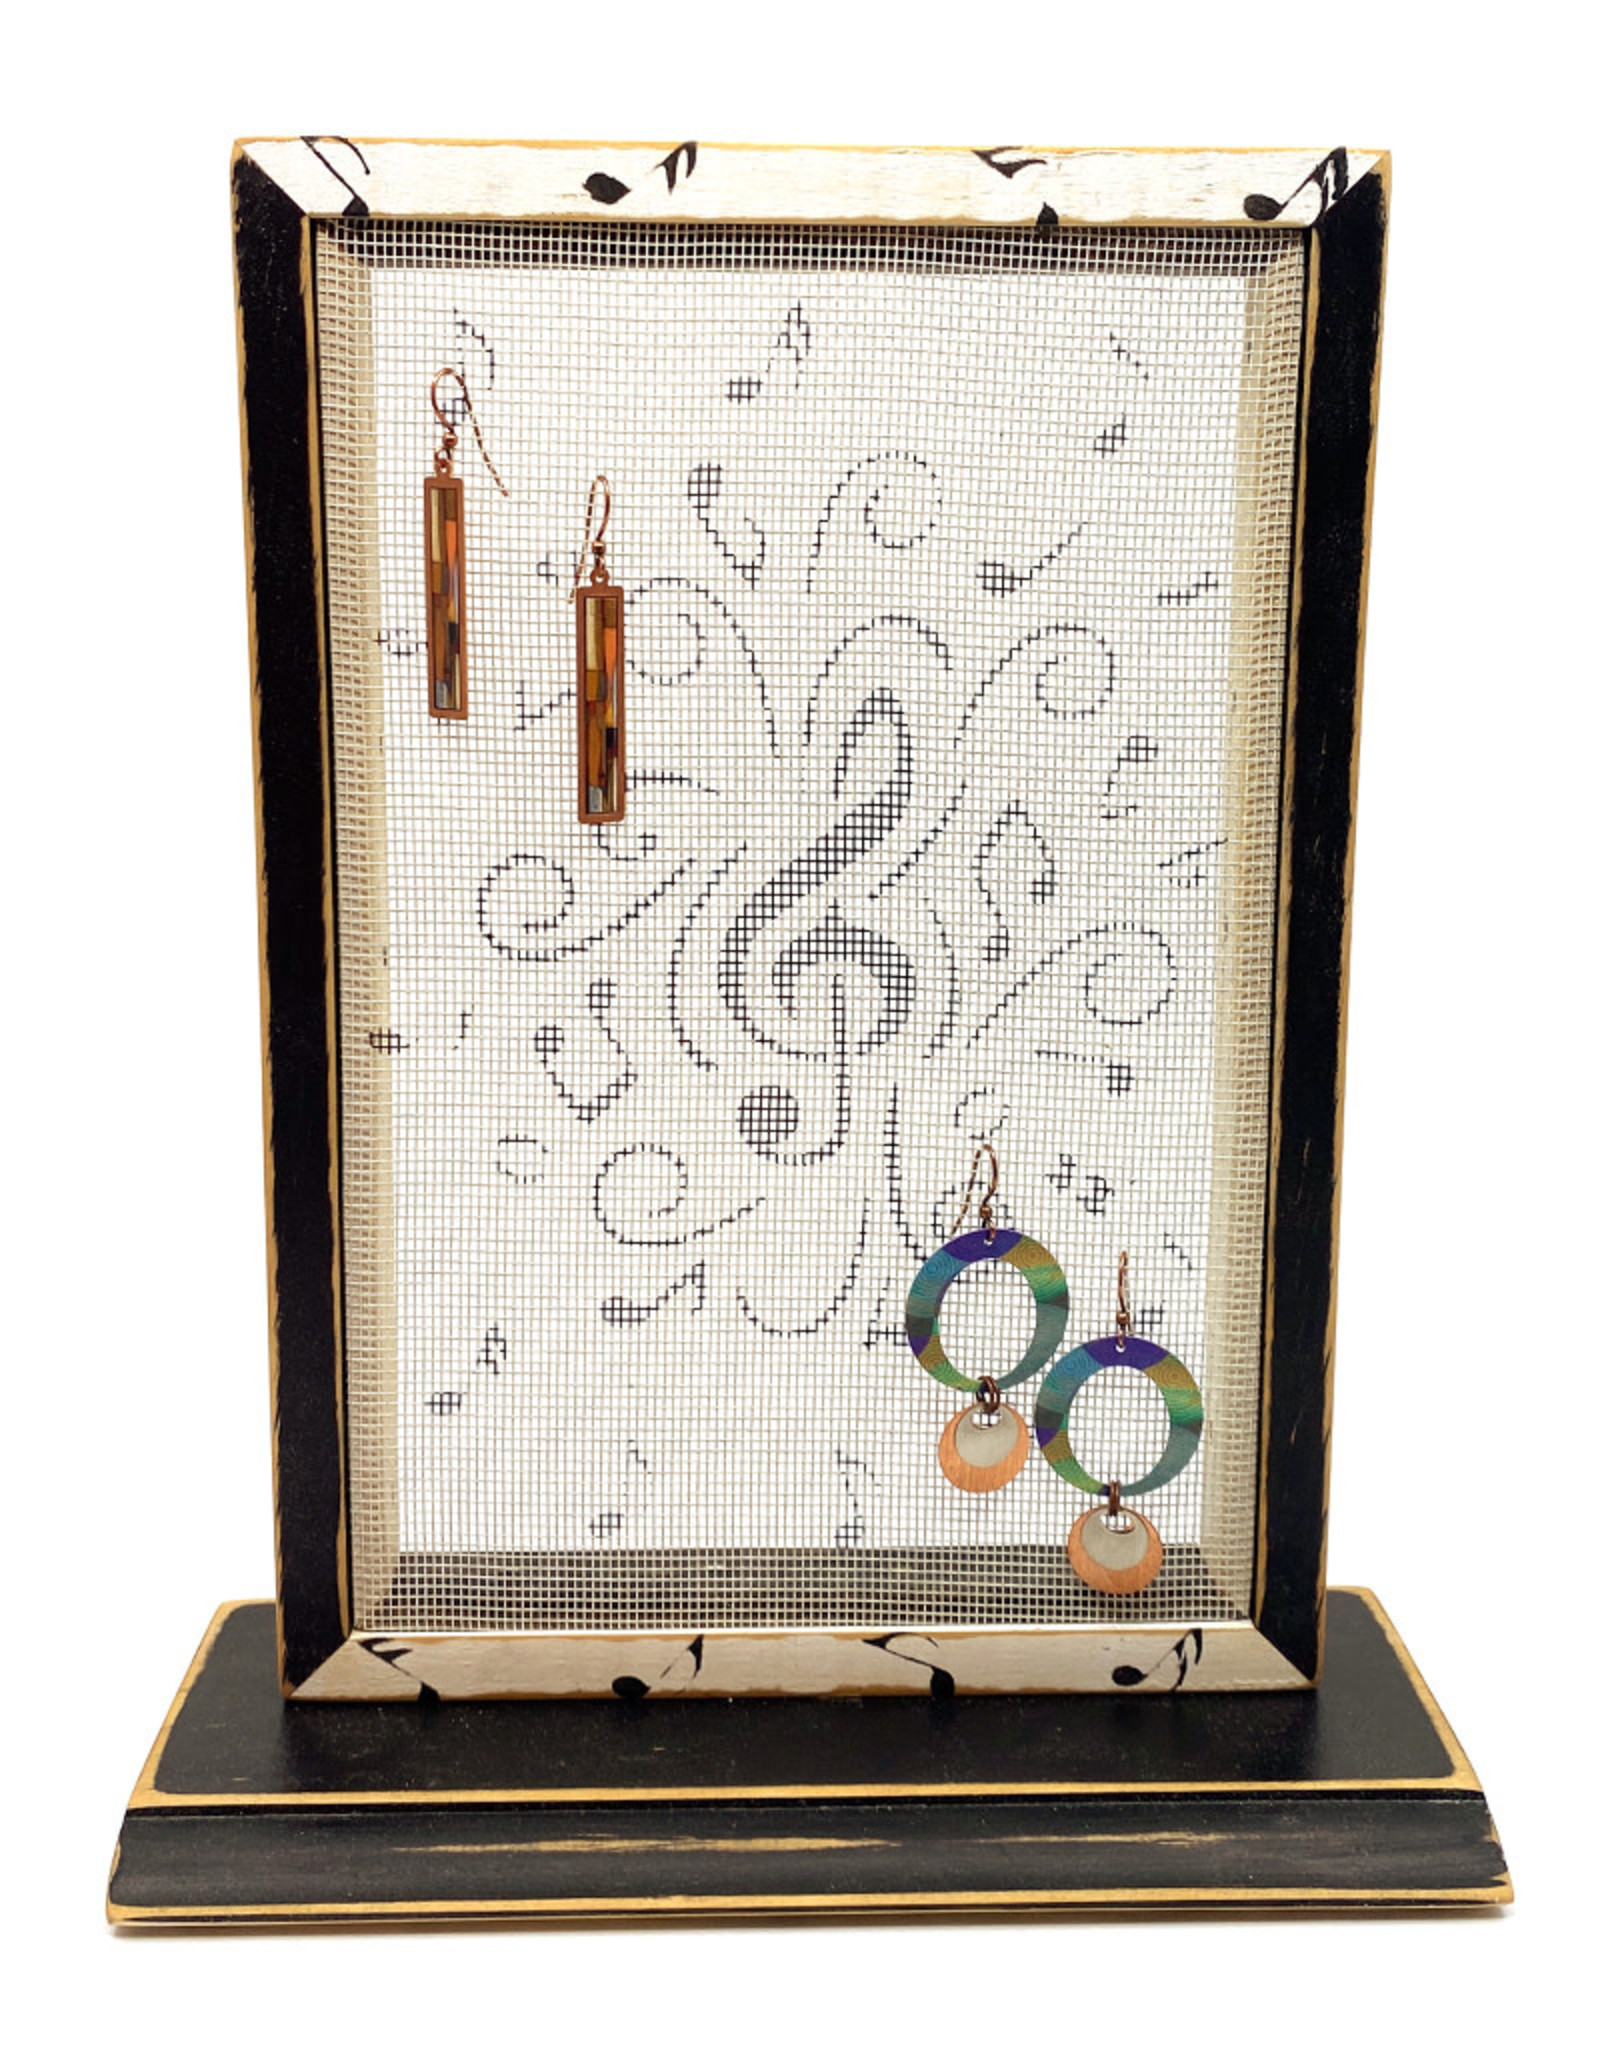 EARRING HOLDER GALLERY MUSIC NOTES EARRING HOLDER WITH BASE